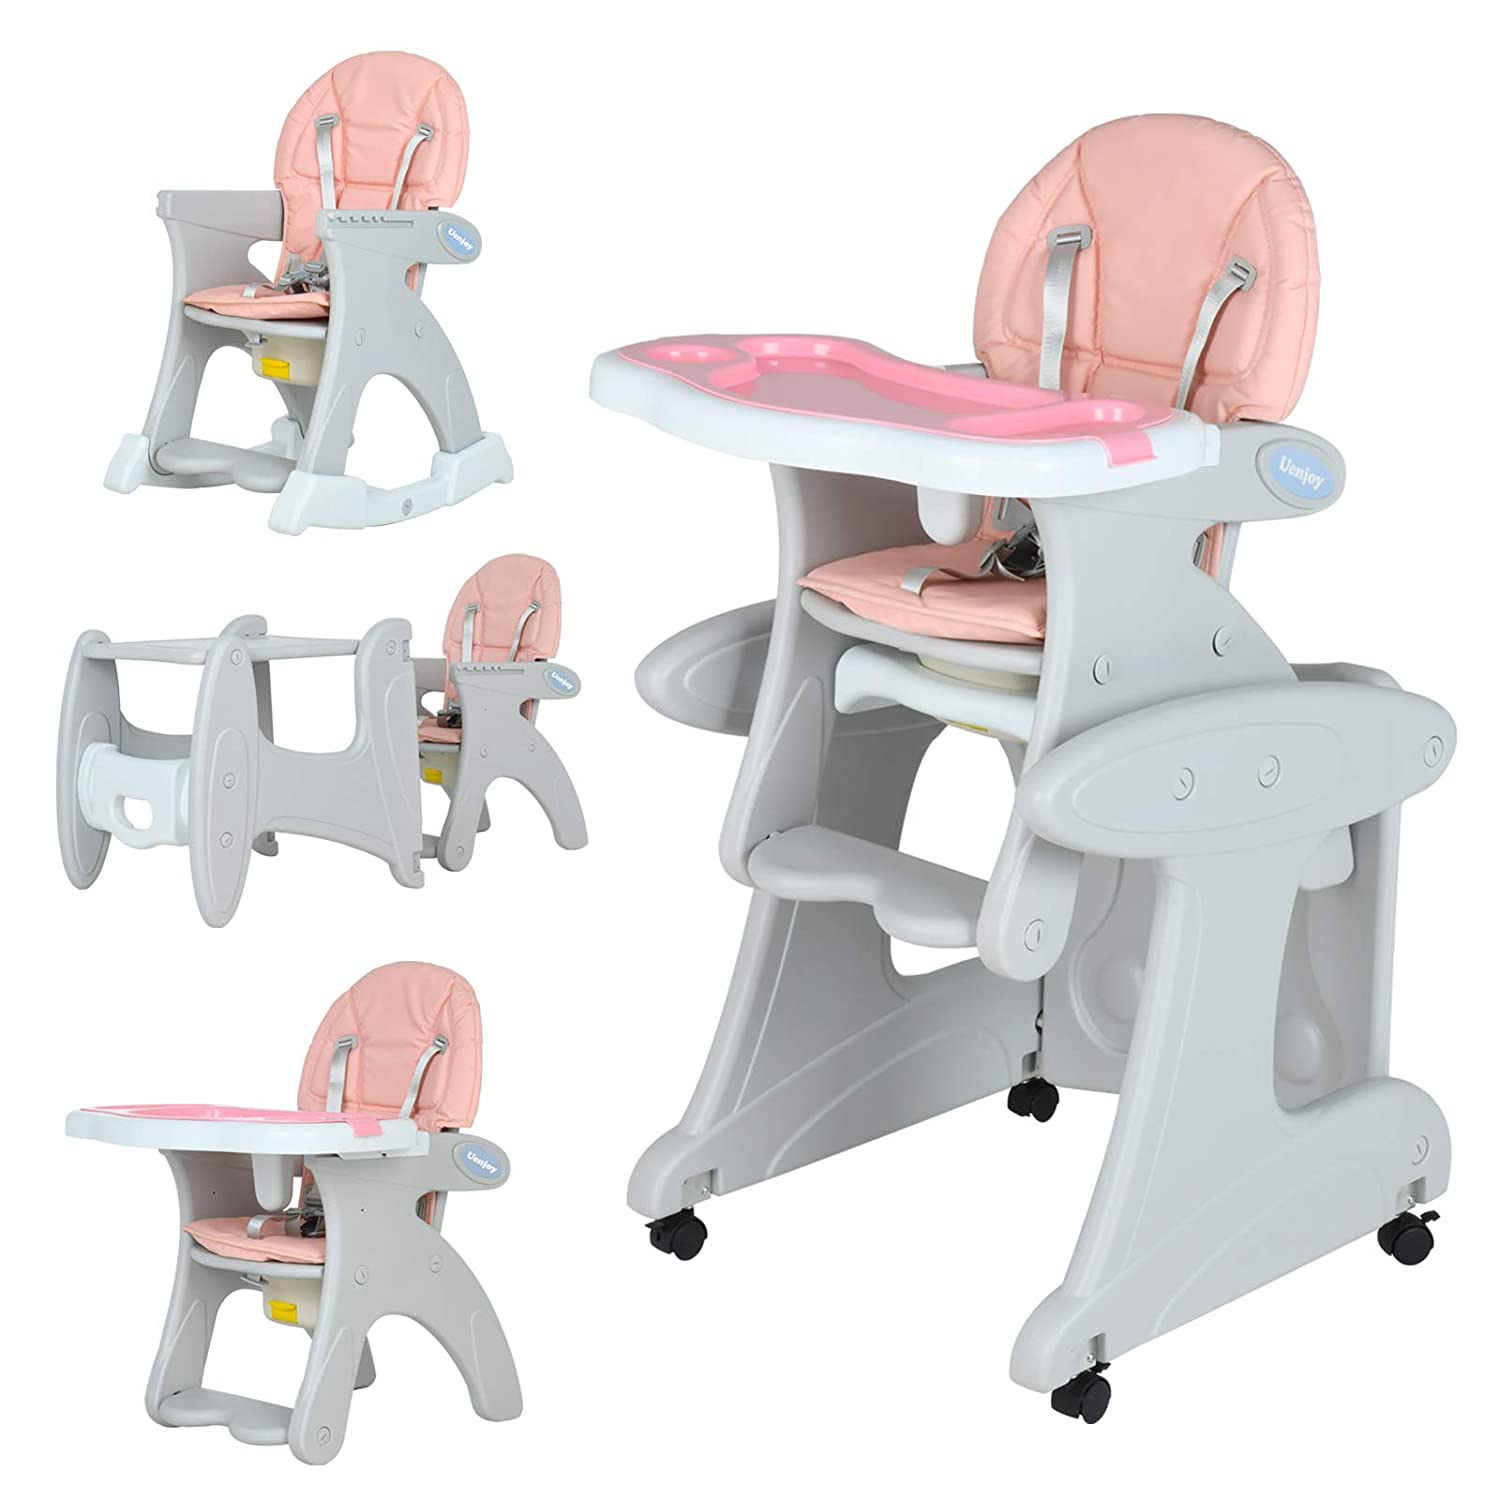 Pink Cushion Baby Floor Chair for Kids Toddler Dining Base 2-in-1 Seat with Straps Baby Booster Feeding Seat with Detachable Tray